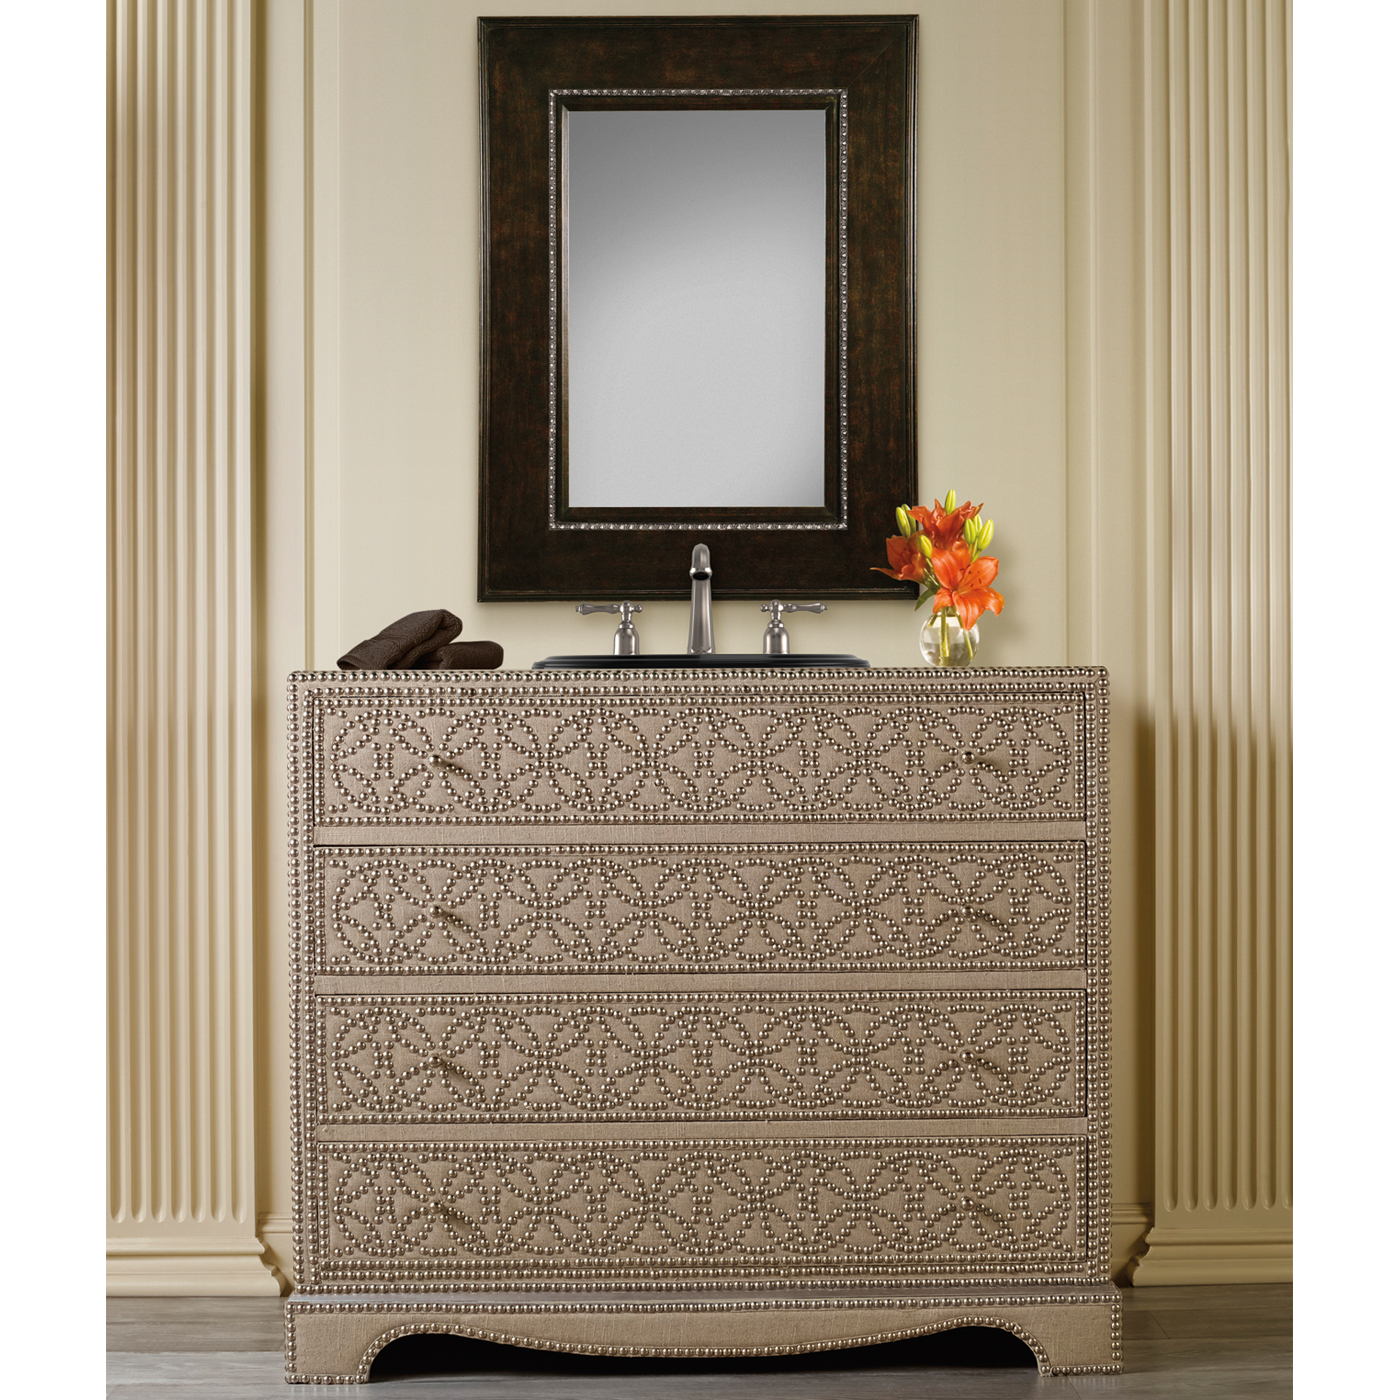 42 inch Hall Chest Bathroom Vanity by Cole & Co Designer Series